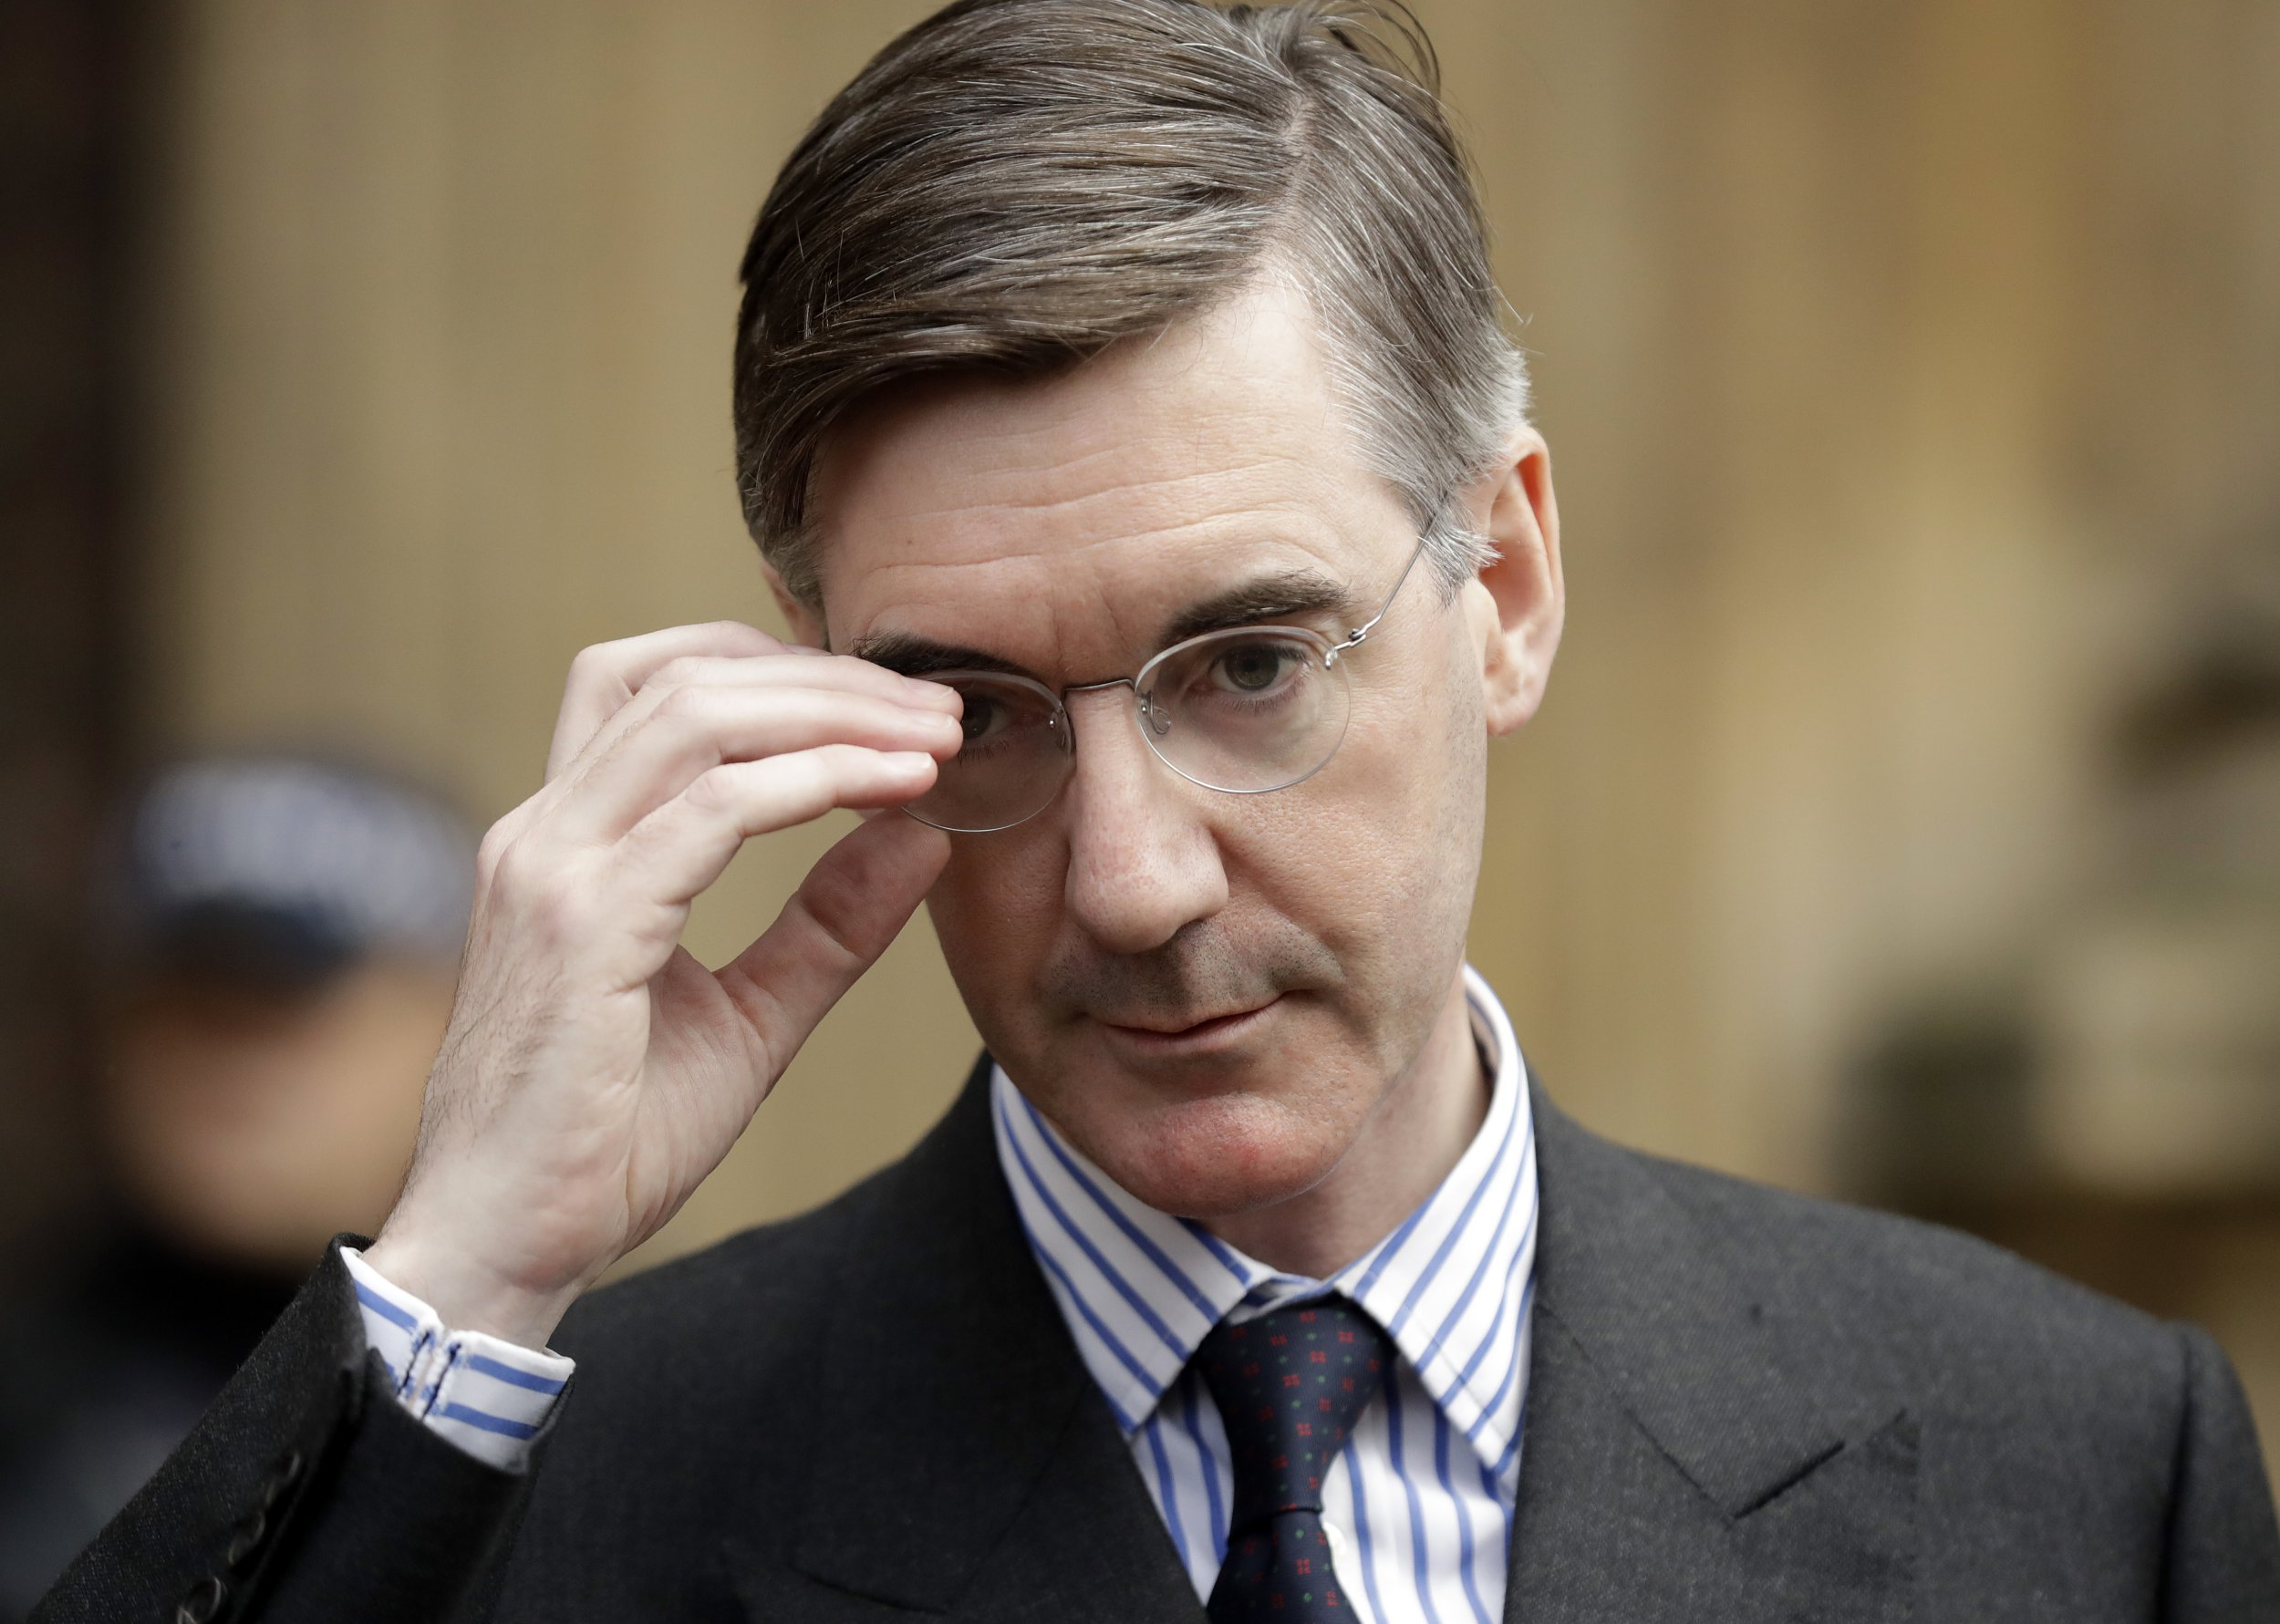 Pro-Brexit, Conservative lawmaker Jacob Rees-Mogg adjusts his glasses as he speaks to the media outside the Houses of Parliament in London, Thursday, Nov. 15, 2018. A pro-Brexit group of Conservative lawmakers says one of its leaders, Jacob Rees-Mogg, is formally calling for a vote of no-confidence in Prime Minister Theresa May. Two British Cabinet ministers, including Brexit Secretary Dominic Raab, resigned Thursday in opposition to the divorce deal struck by Prime Minister Theresa May with the EU ??? a major blow to her authority and her ability to get the deal through Parliament.(AP Photo/Matt Dunham)